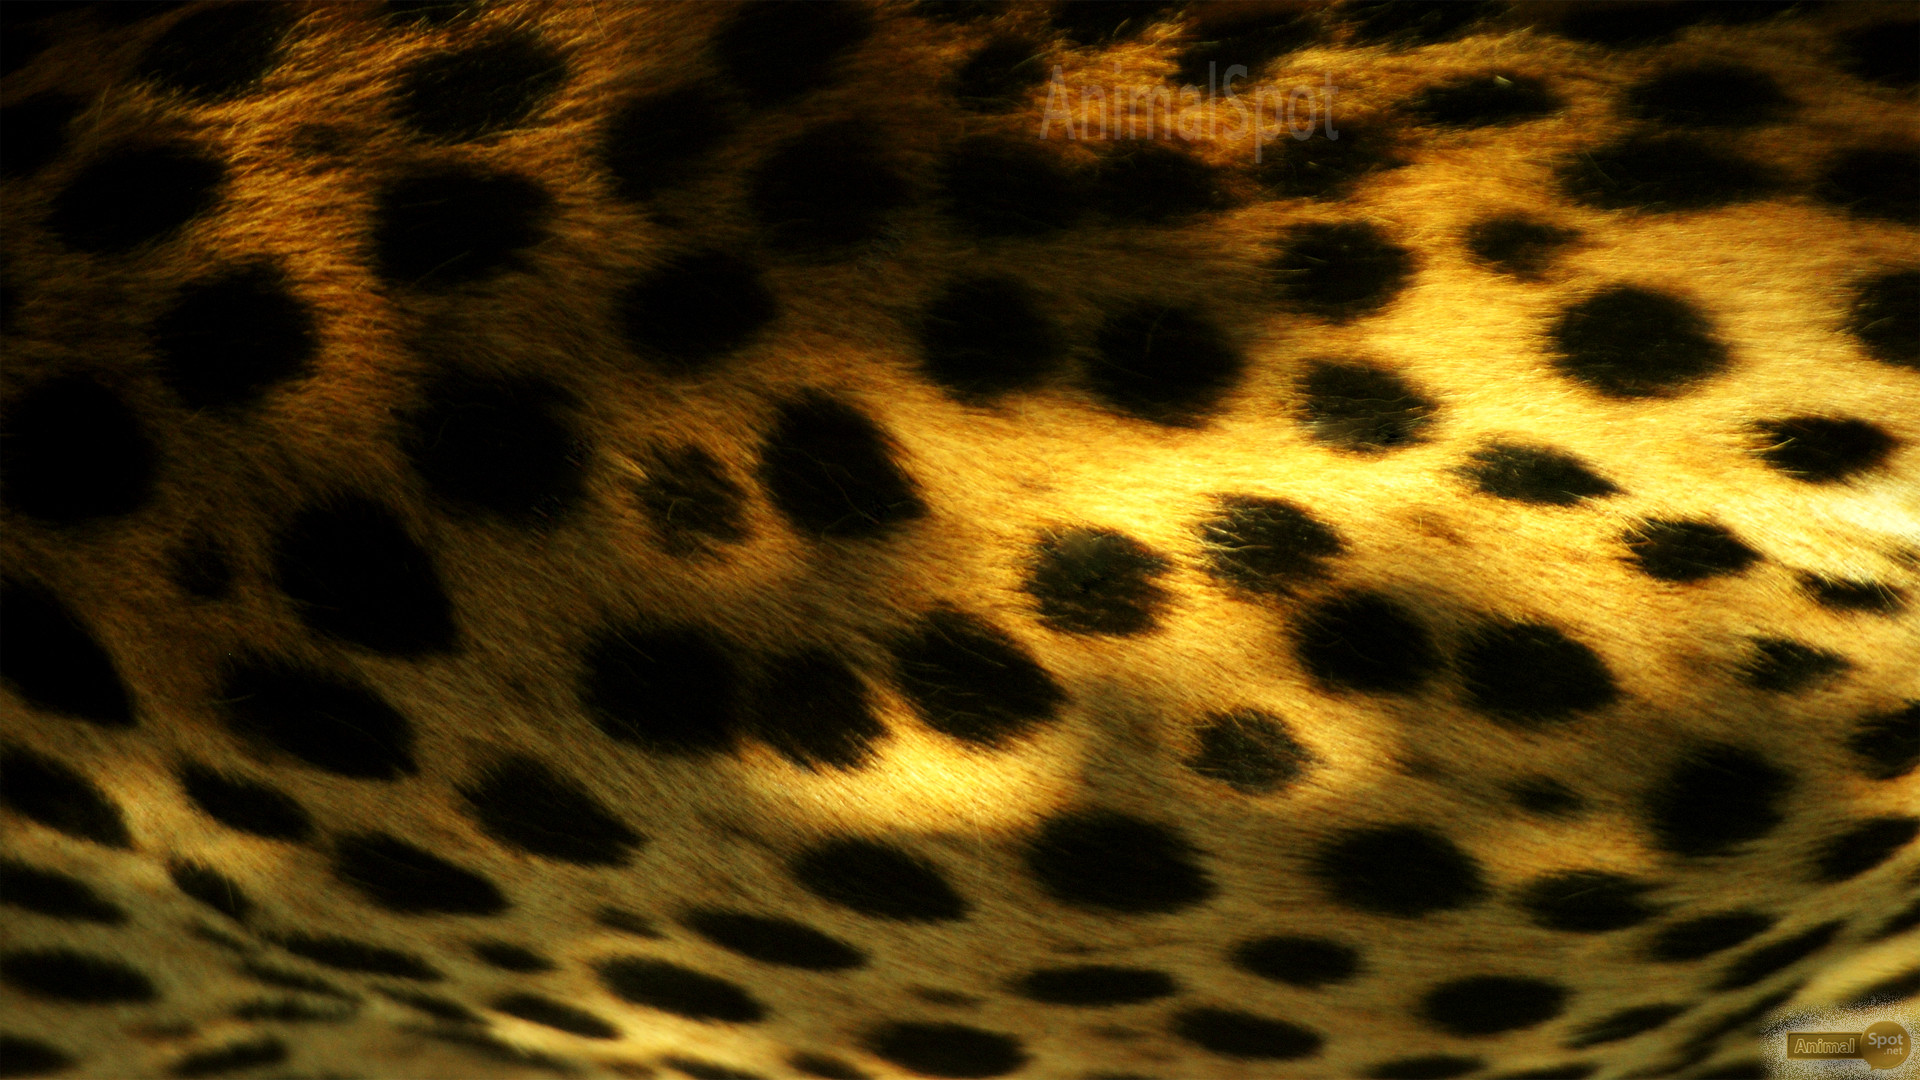 Wallpapers Of Cheetah 72 Images HD Wallpapers Download Free Images Wallpaper [1000image.com]